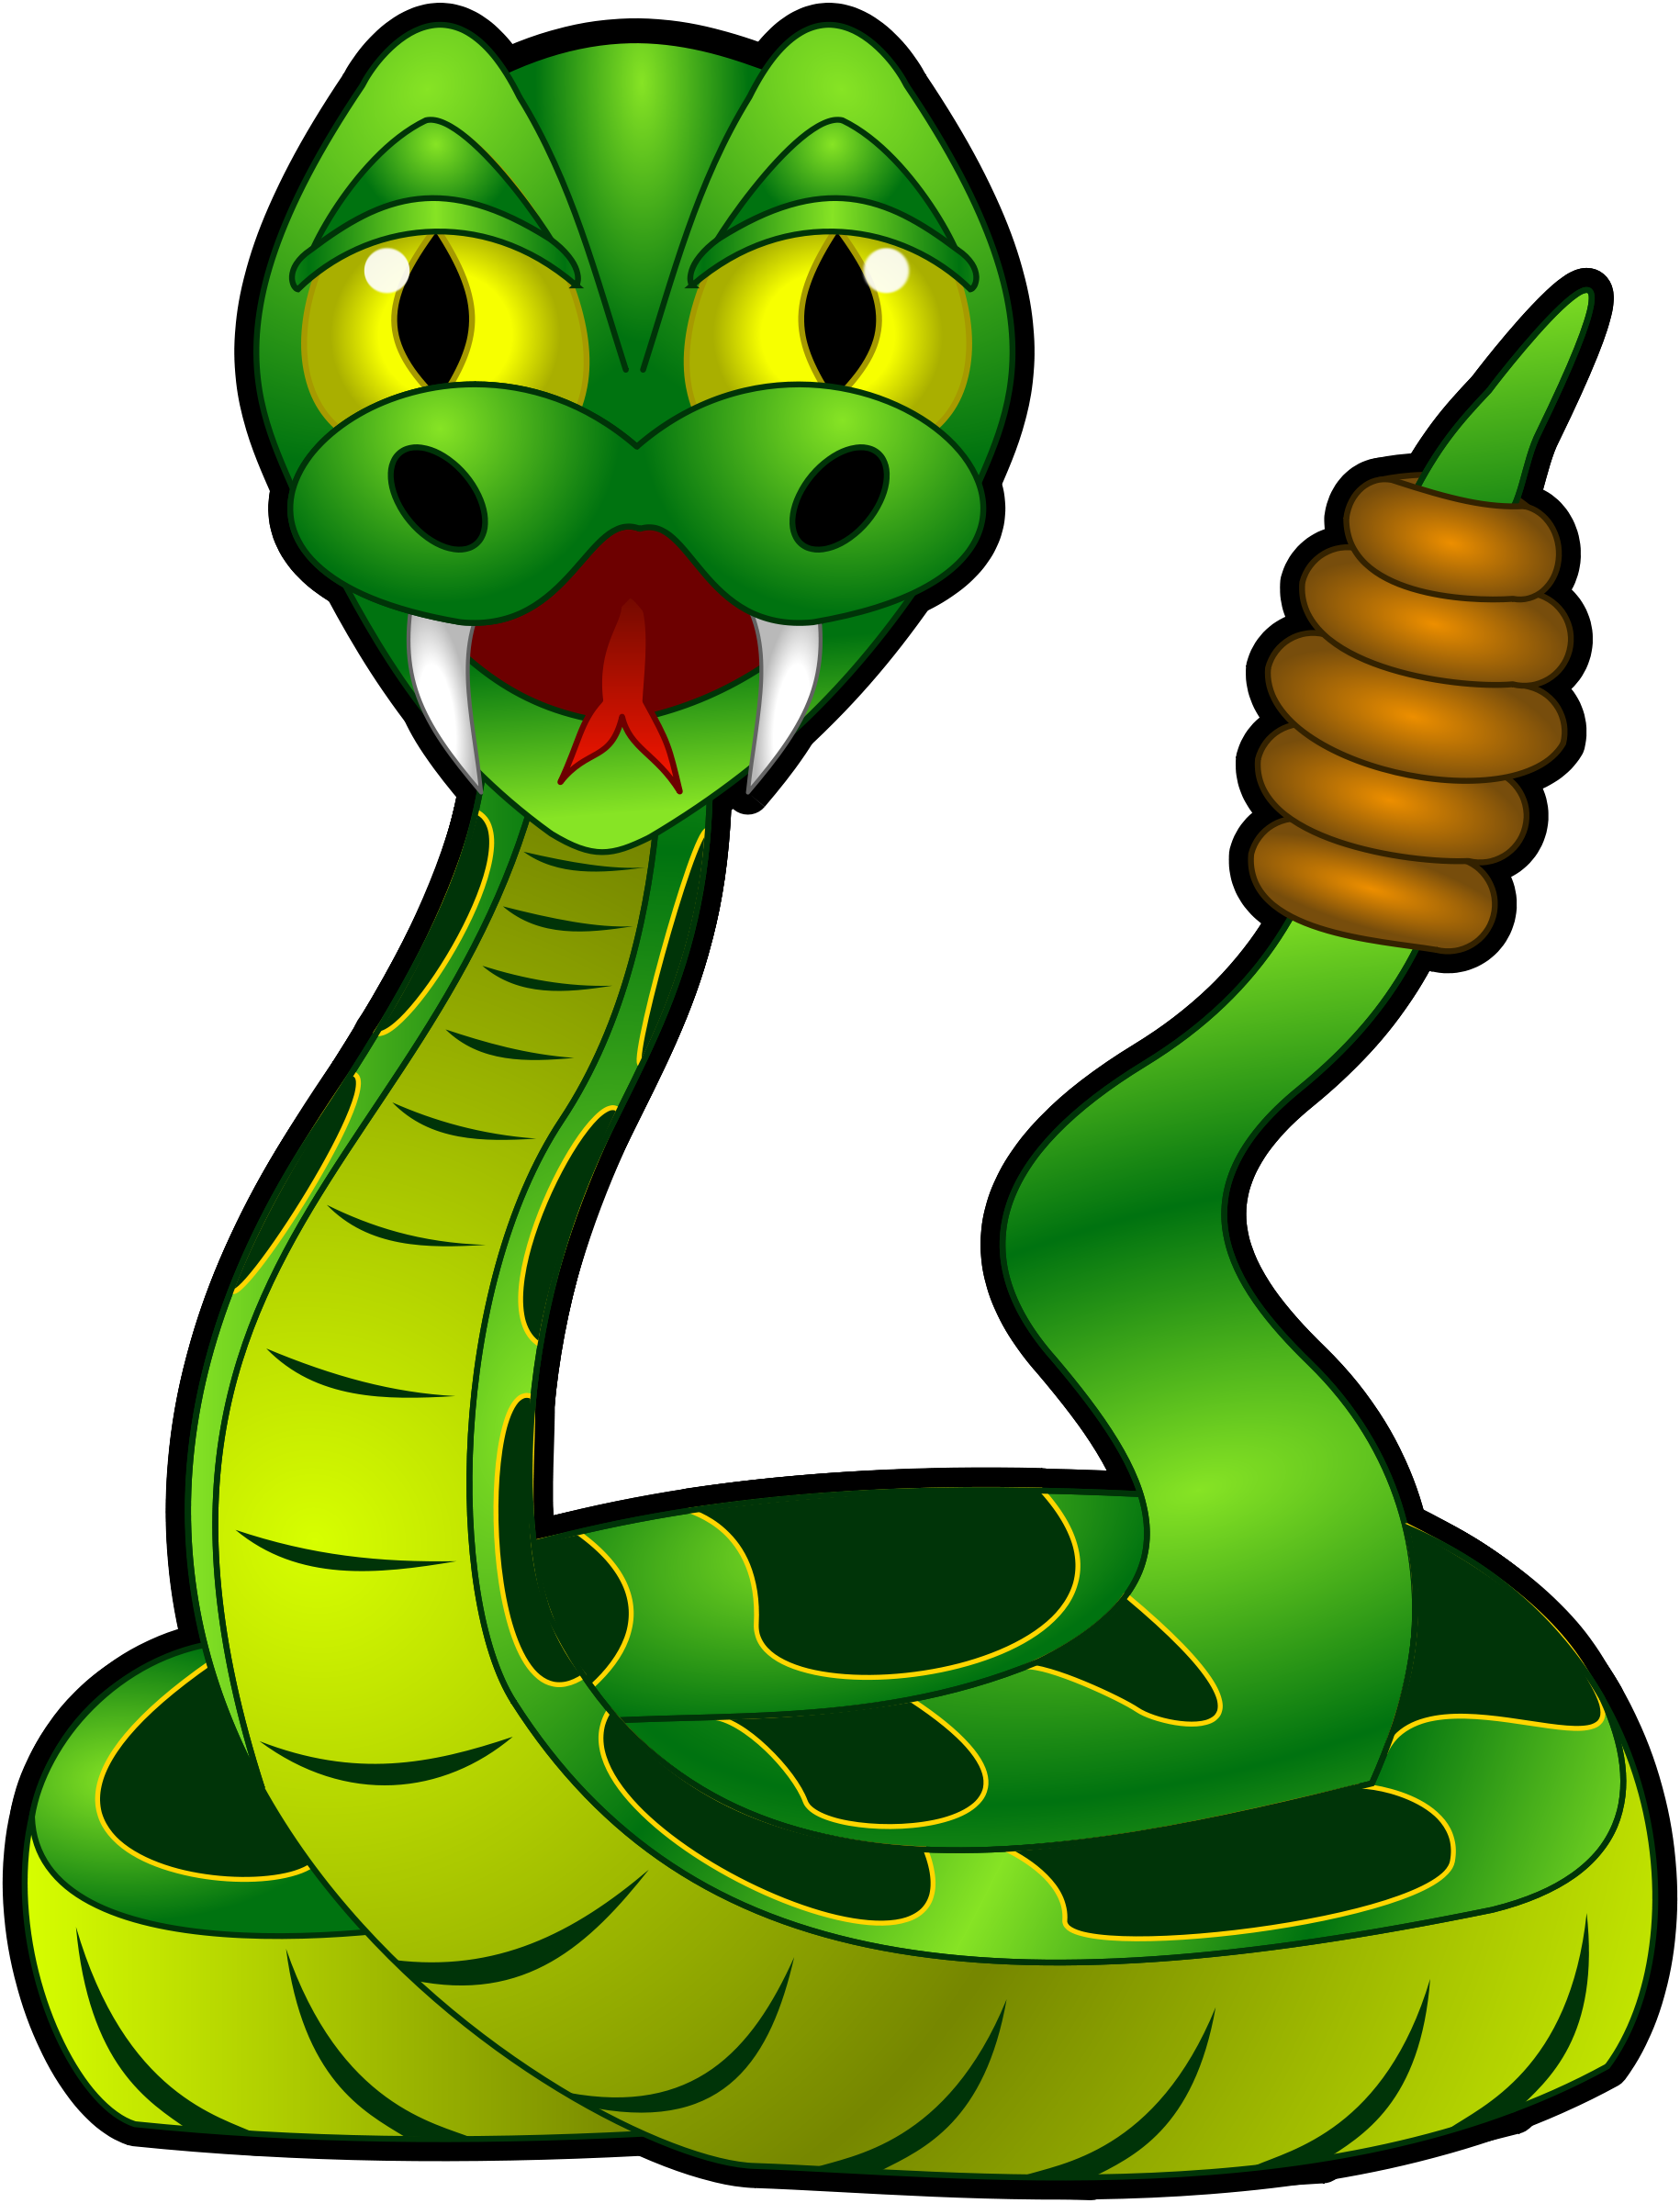 Rattlesnake clipart #3, Download drawings